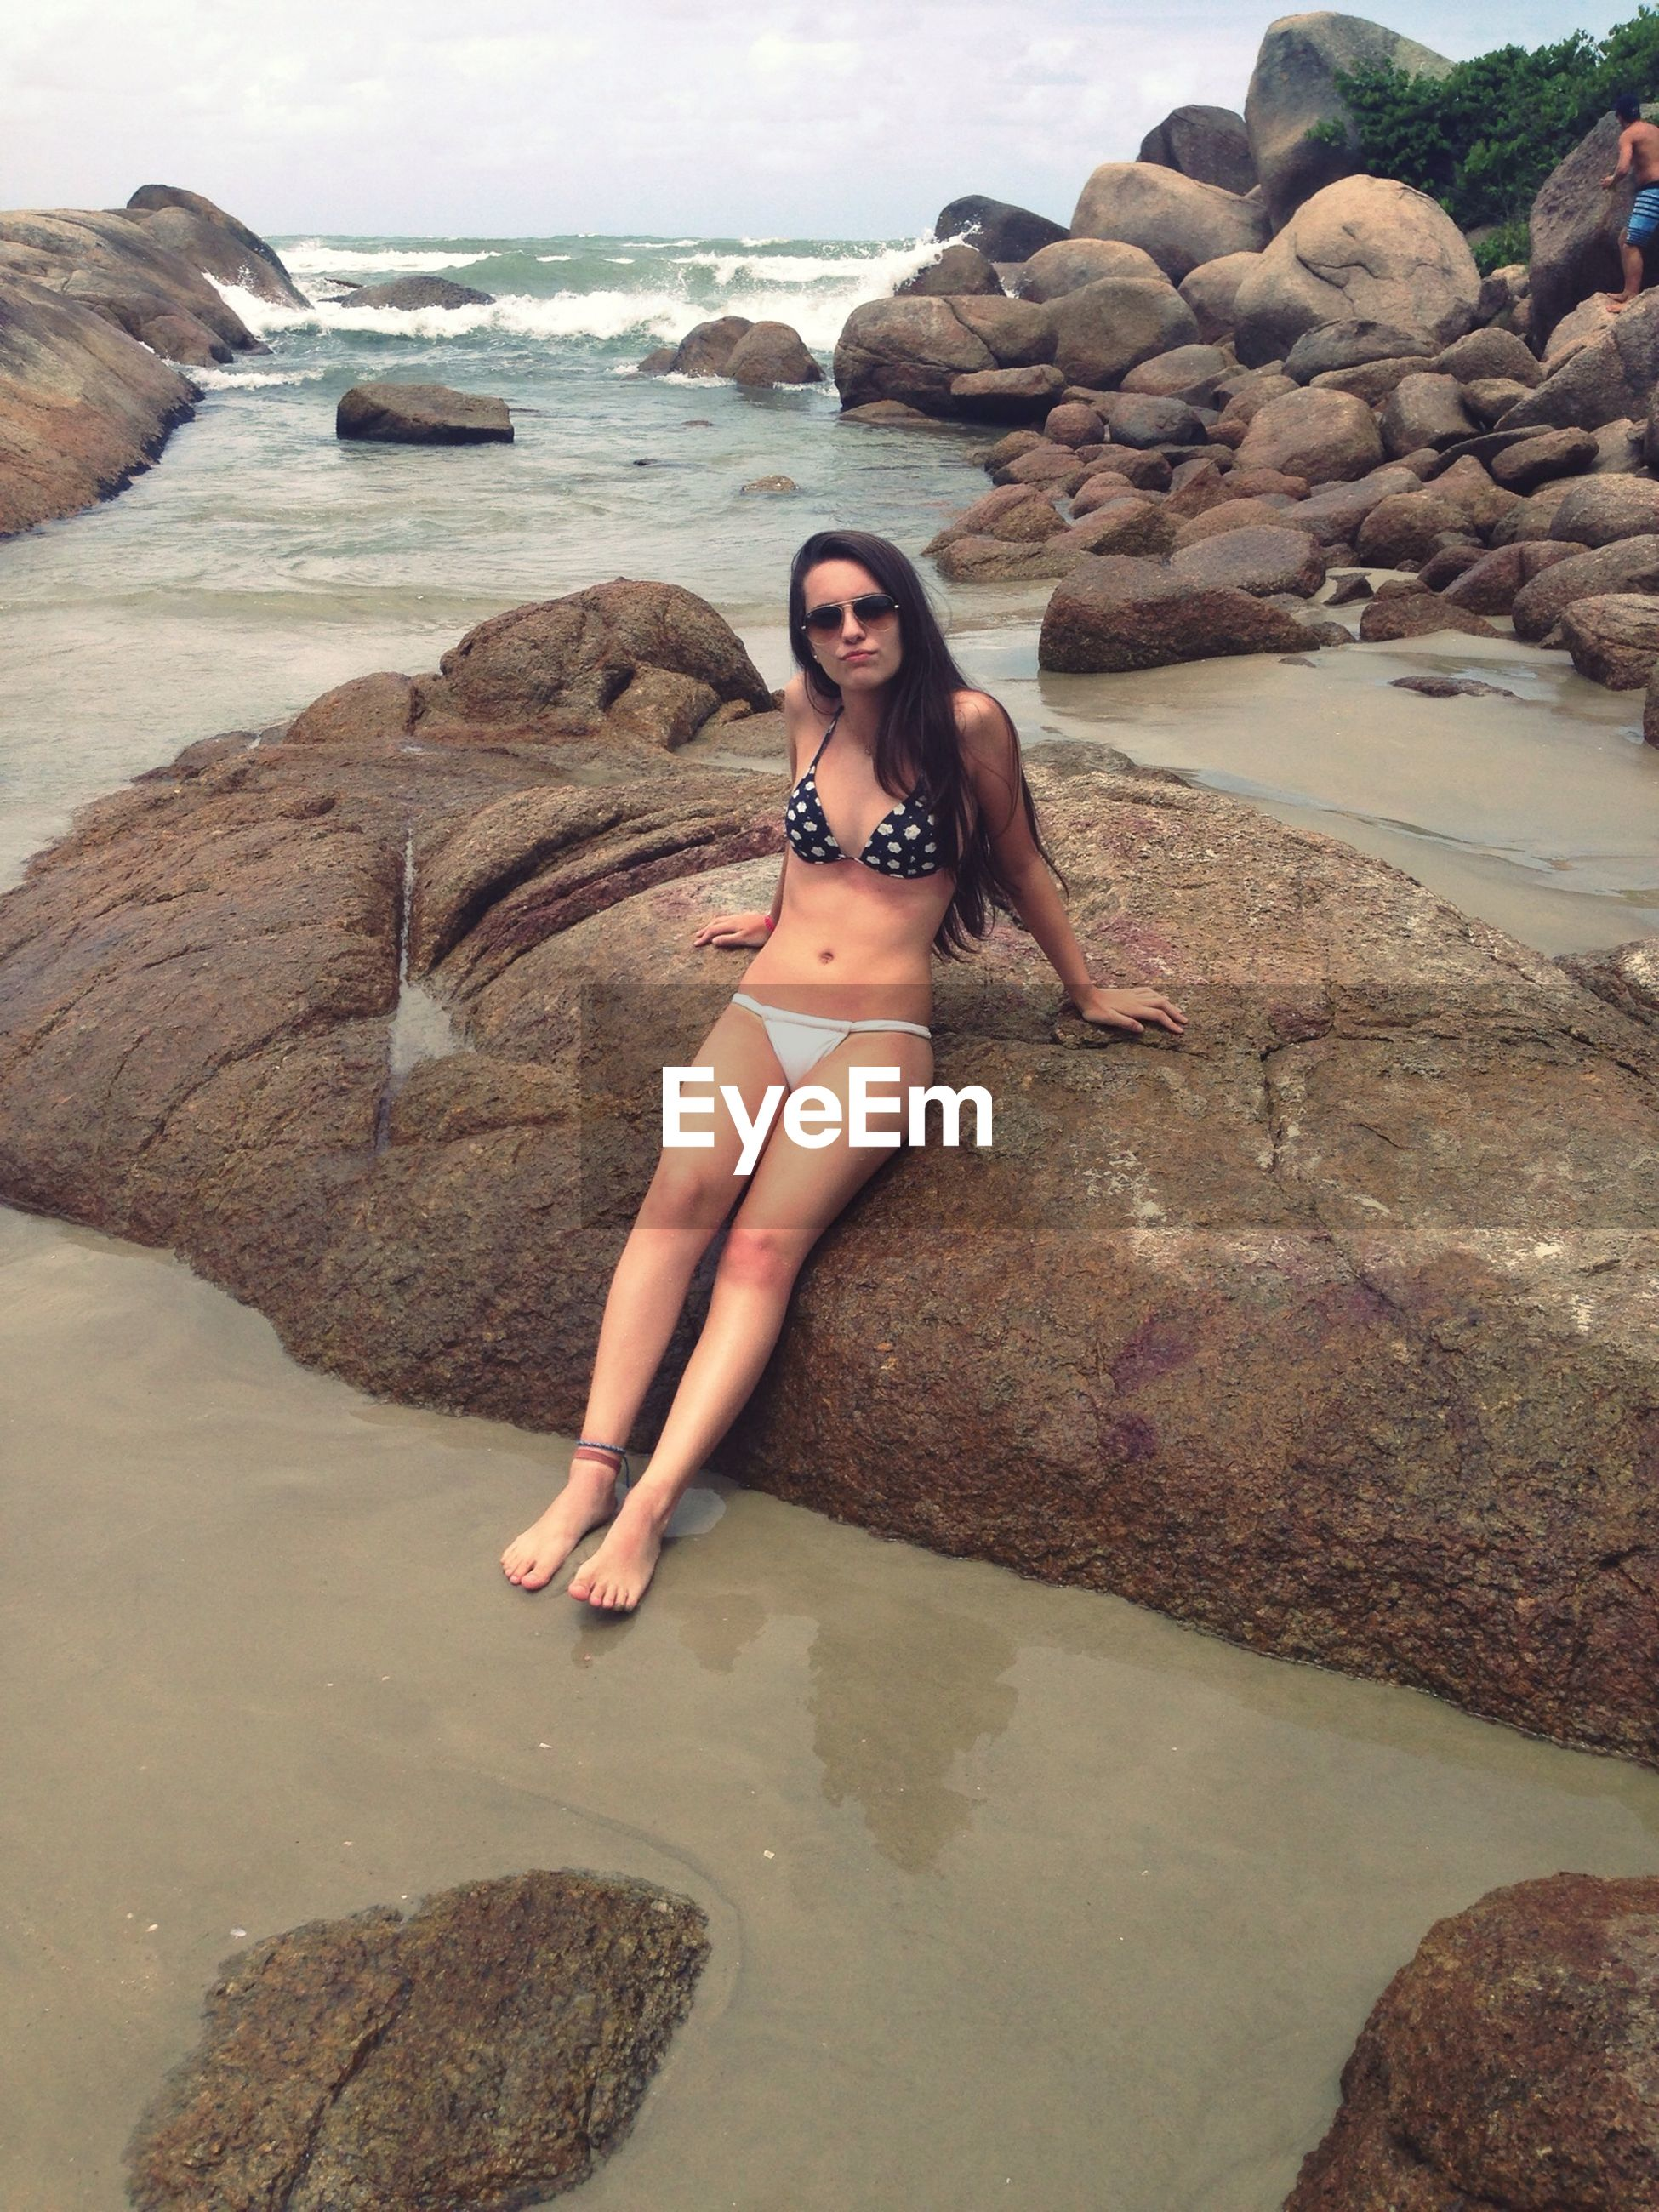 water, sea, lifestyles, beach, leisure activity, young adult, person, young women, rock - object, shore, vacations, looking at camera, portrait, full length, sitting, casual clothing, sunglasses